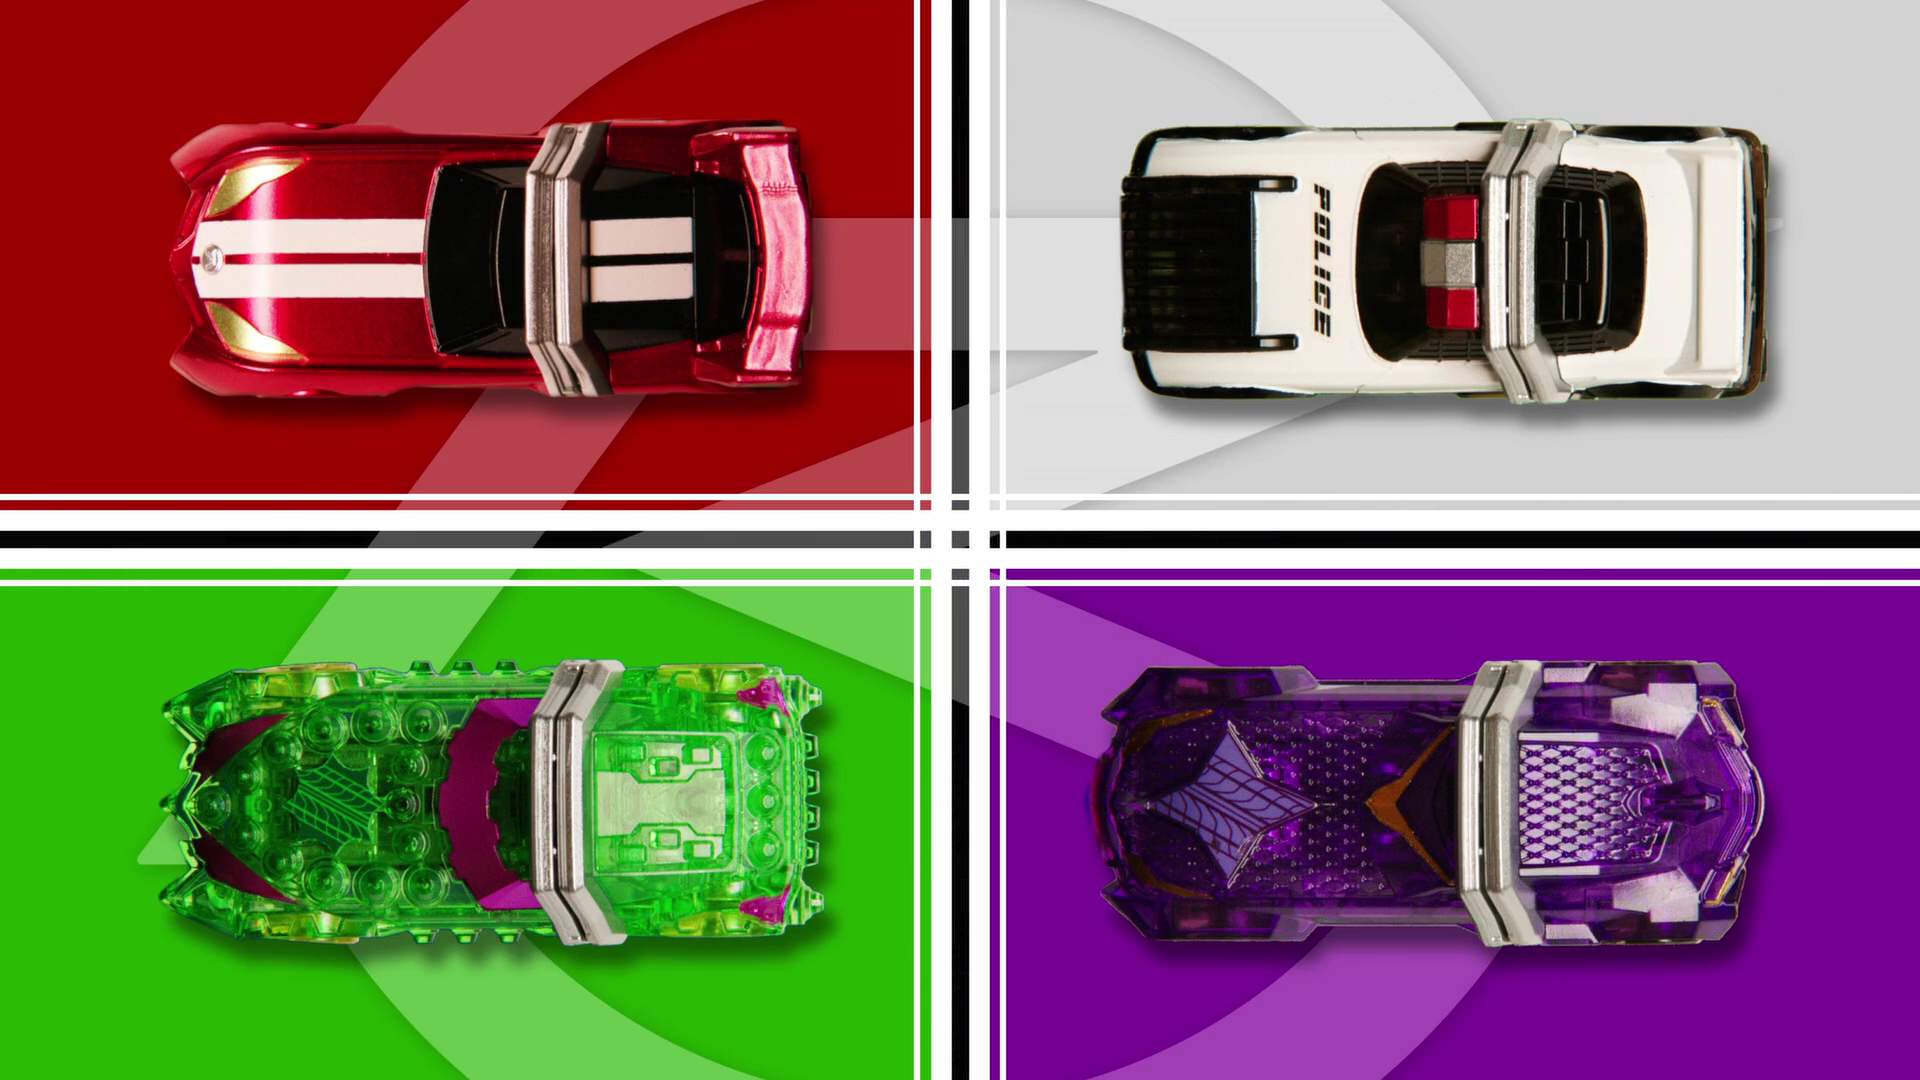 http://img1.wikia.nocookie.net/__cb20141012143838/kamenrider/images/b/b4/ShiftCars_KrDr_Ep02.png